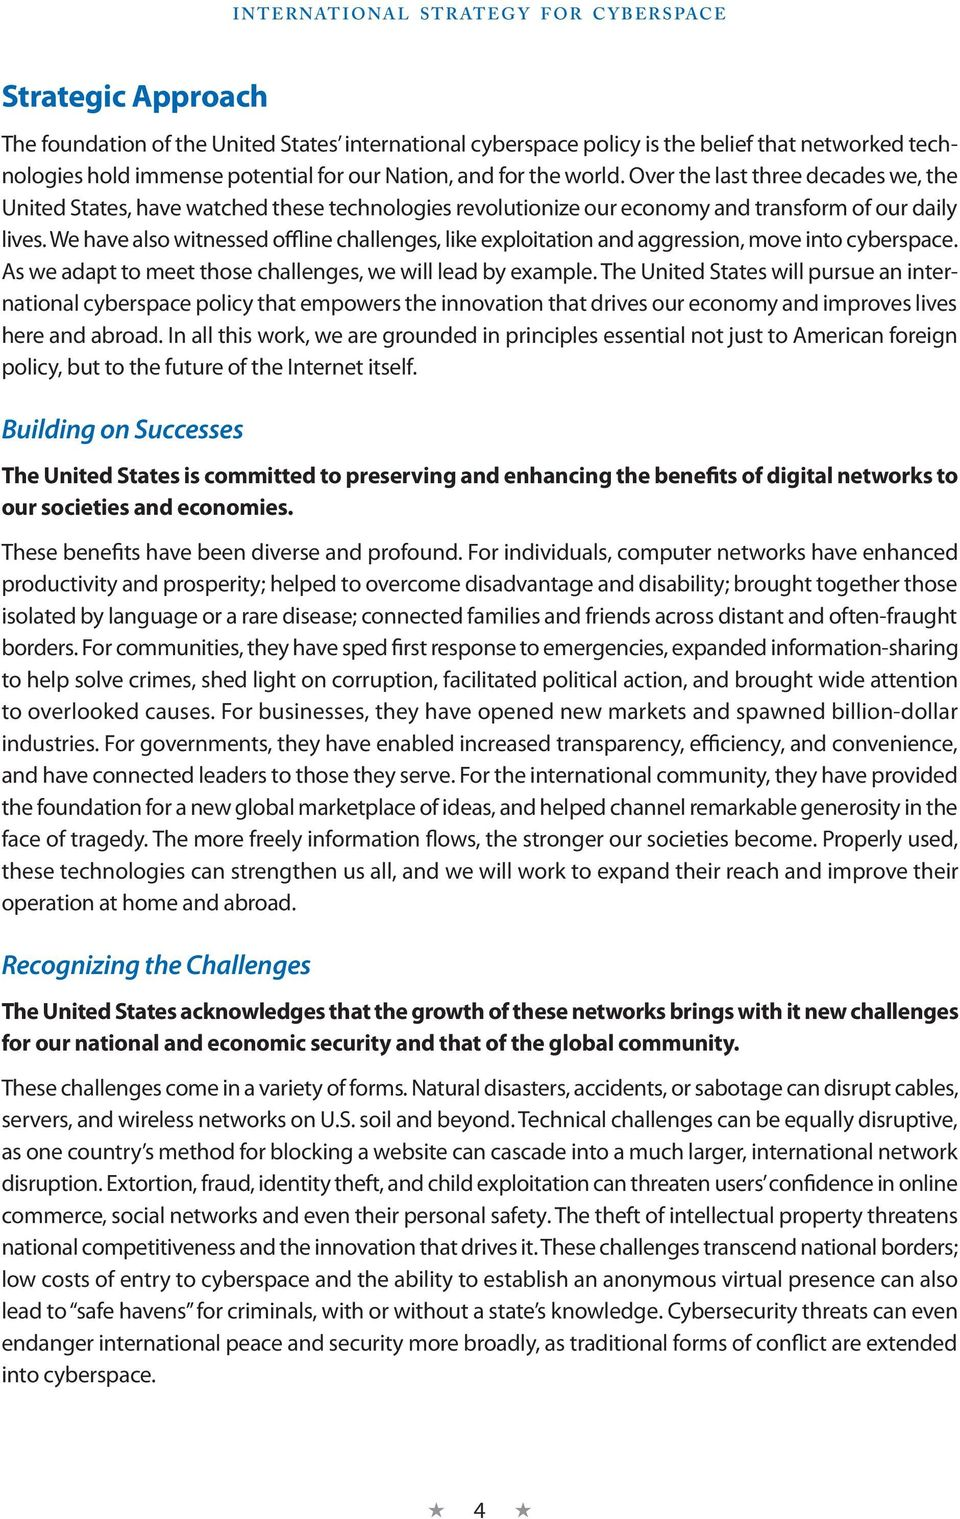 Our international cyberspace policy reflects our core commitments to fundamental freedoms, privacy, and the free flow of information. Fundamental Freedoms.